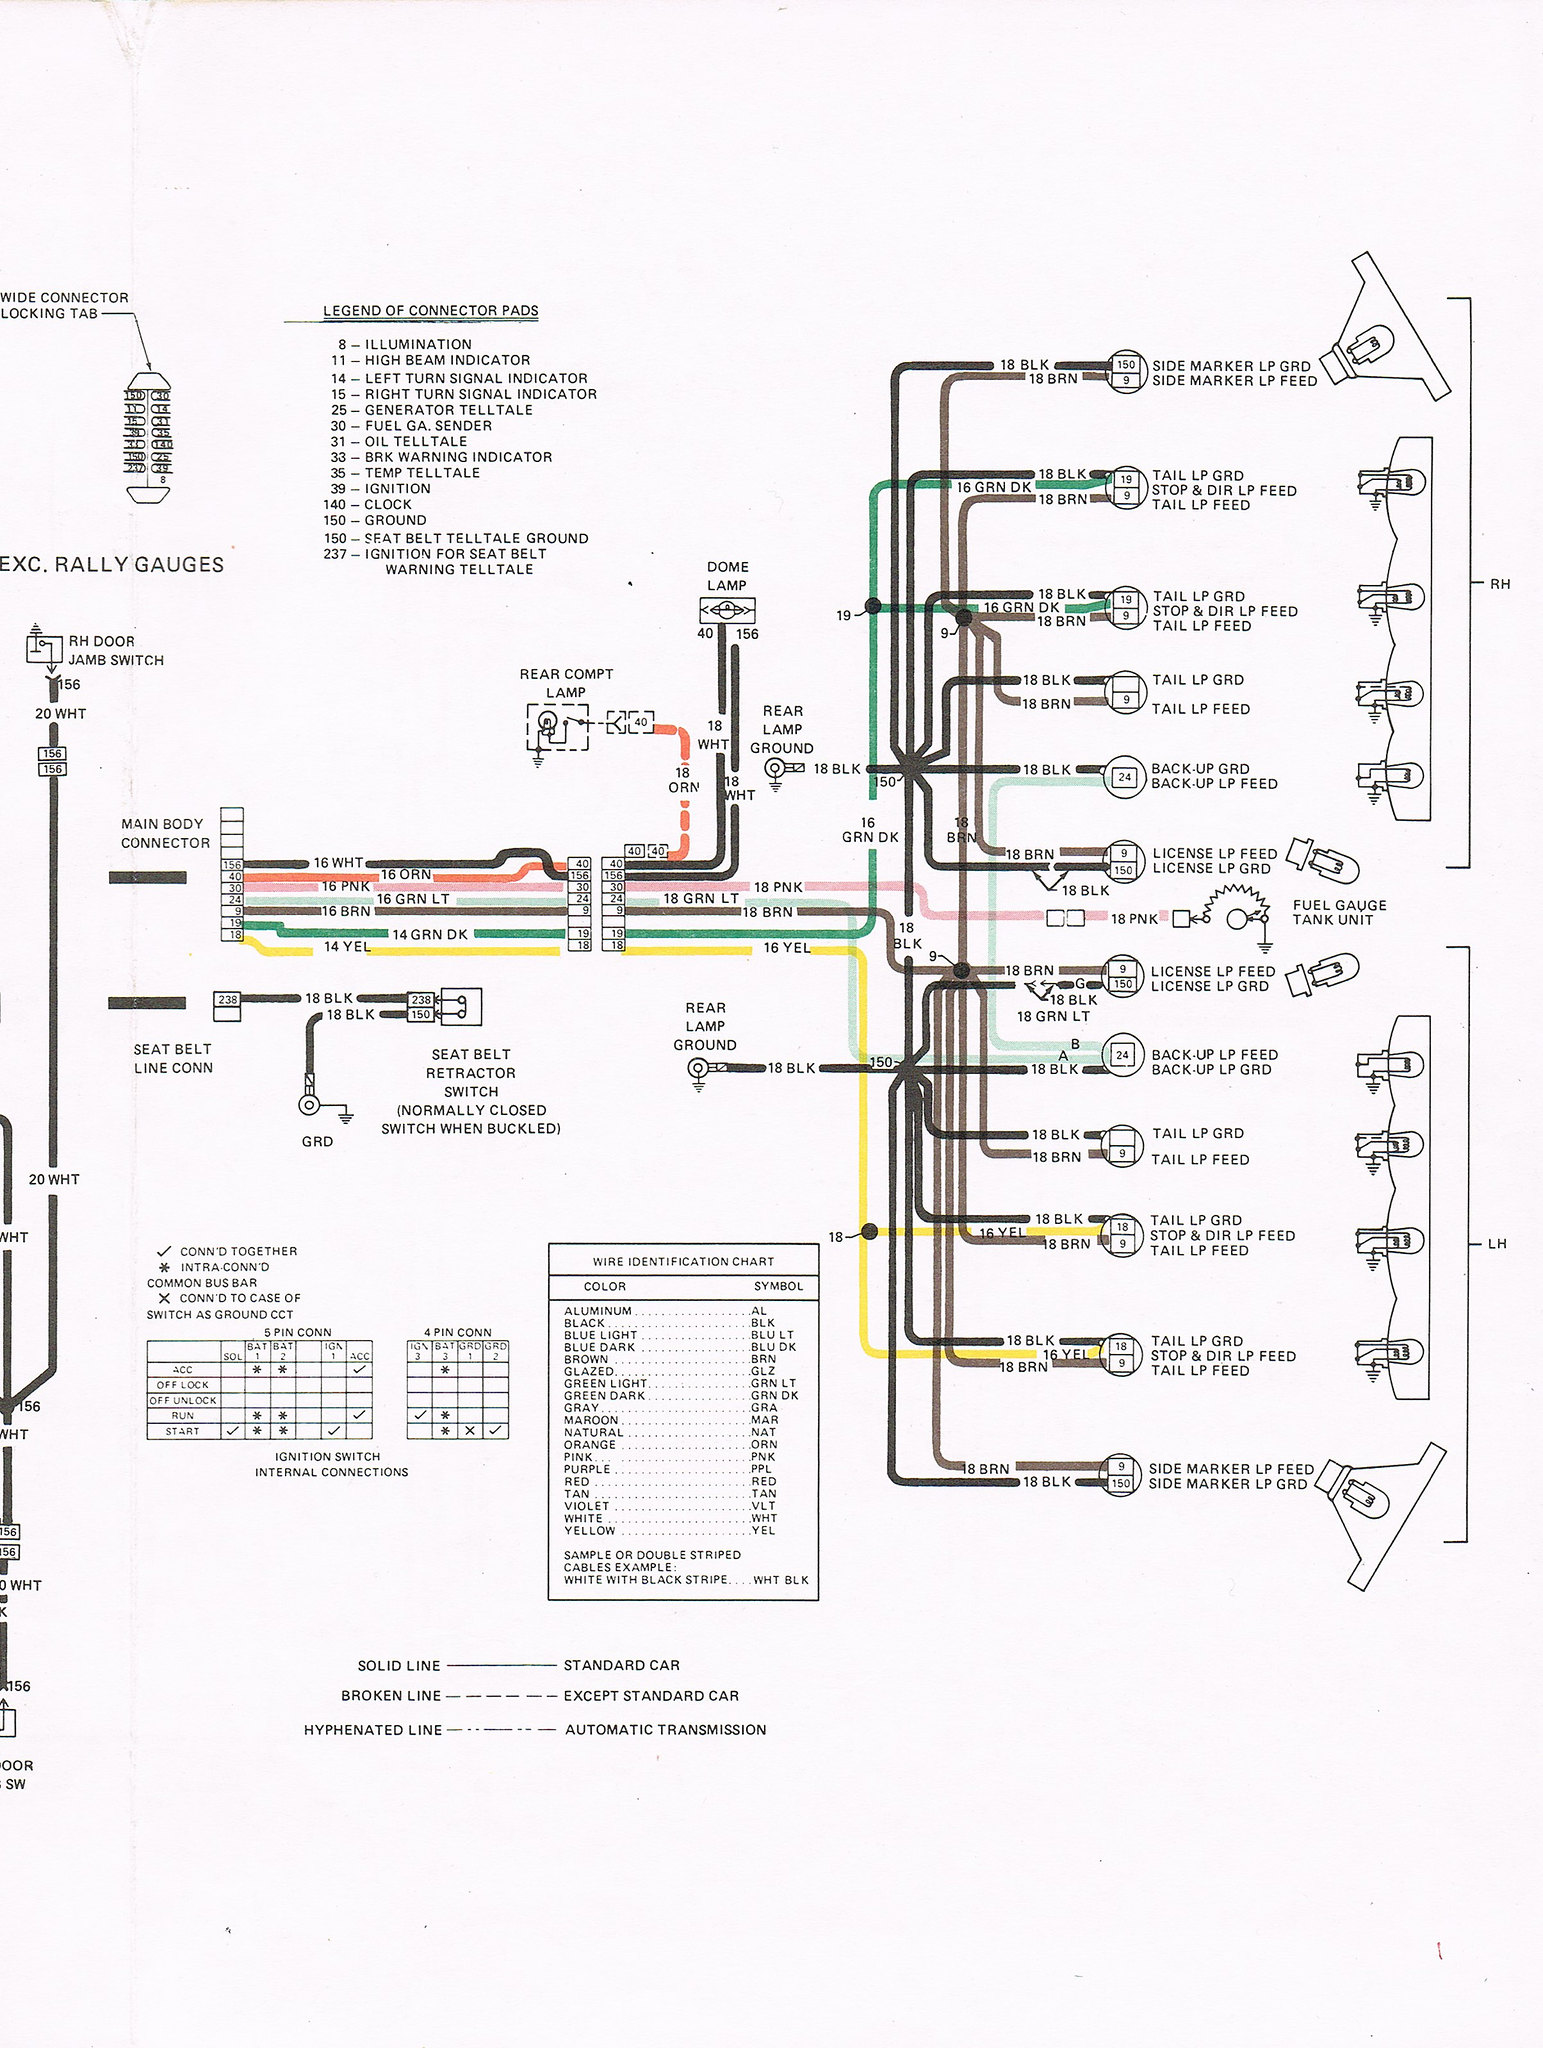 80 camaro wiring diagram   24 wiring diagram images